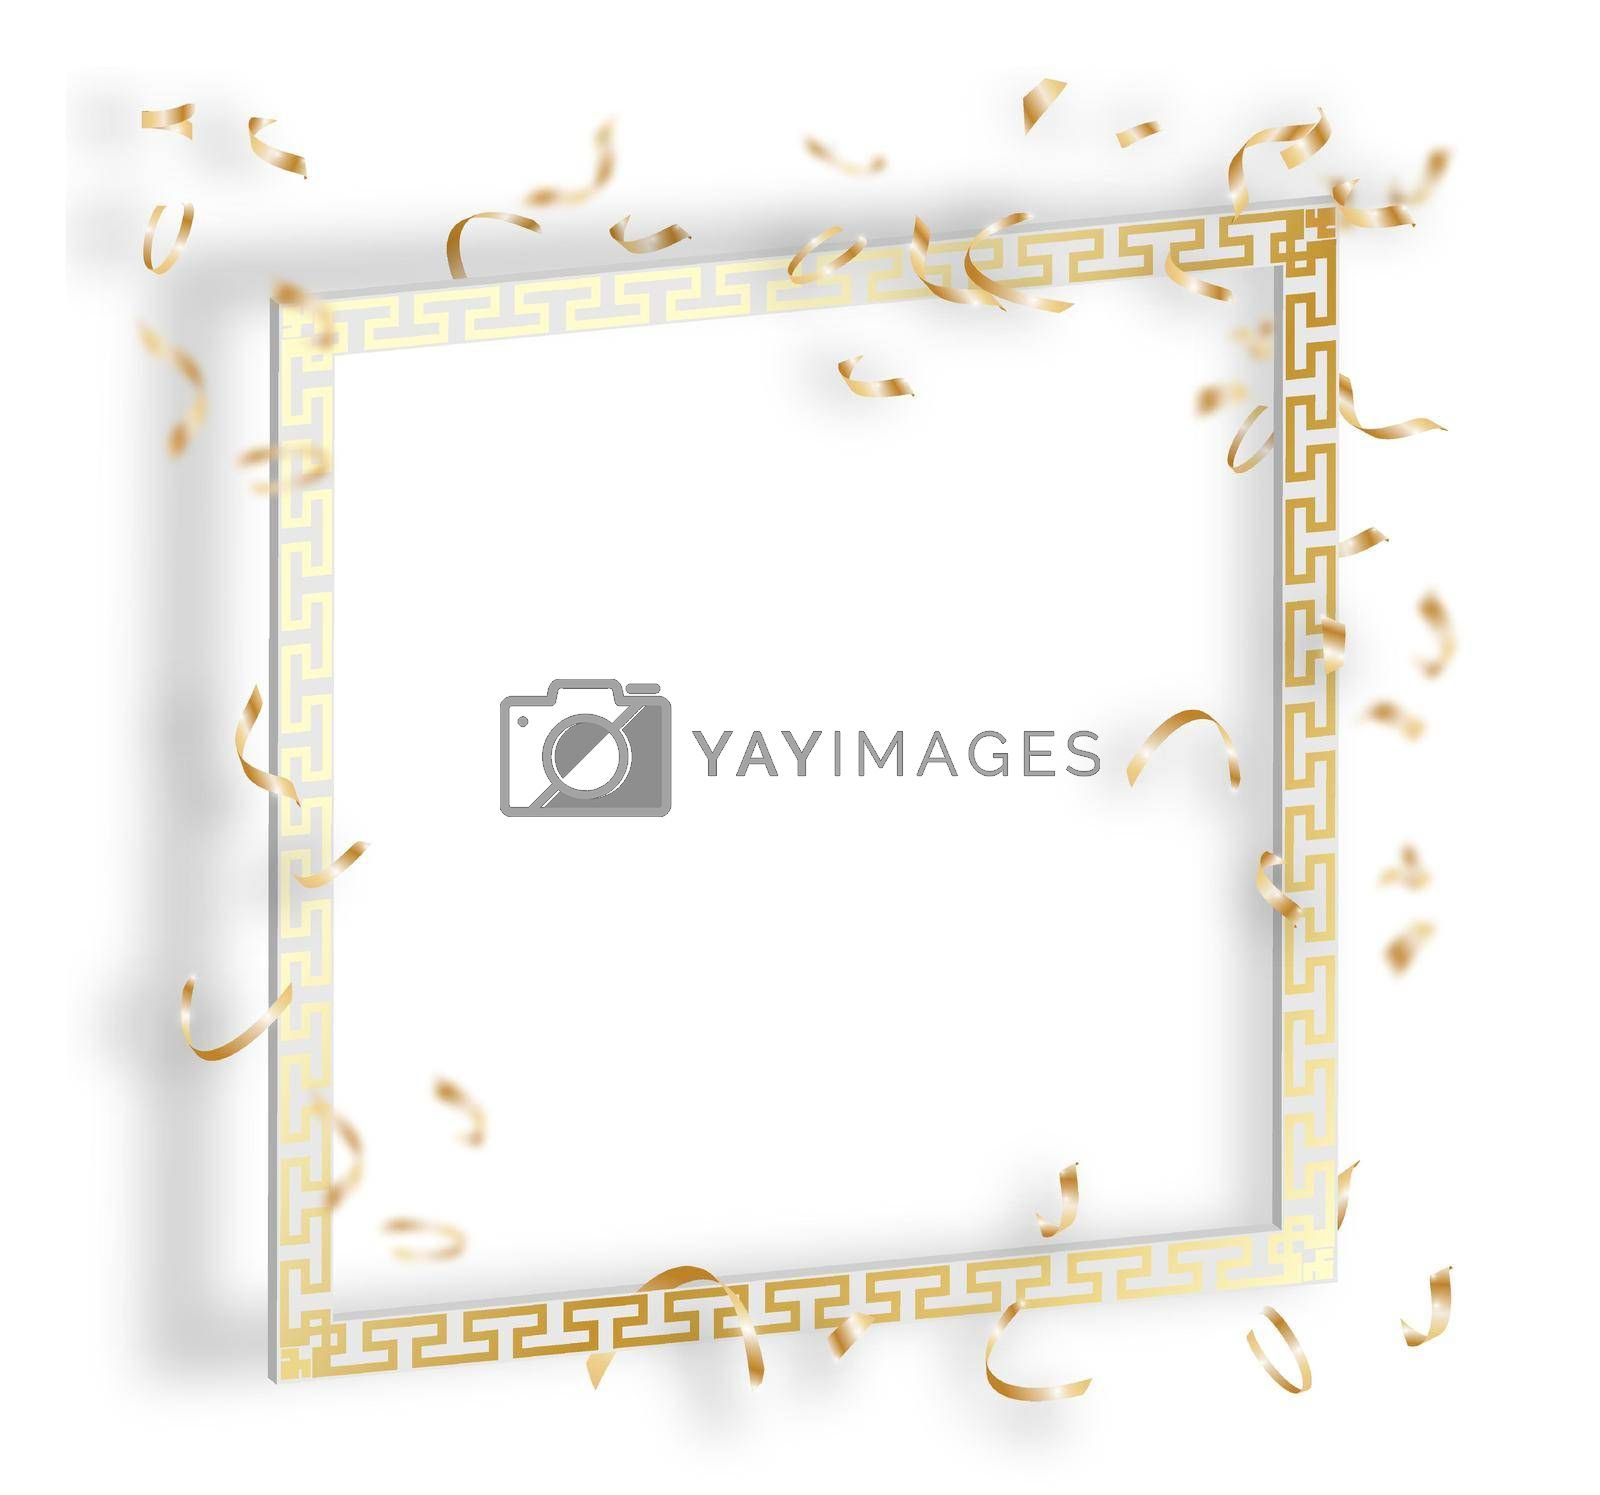 white solemn frame with expensive gold ornament and gold confetti. Tinsel falls from above. Festive template for congratulations on birthday, anniversary, wedding. Realistic ceremonial vector